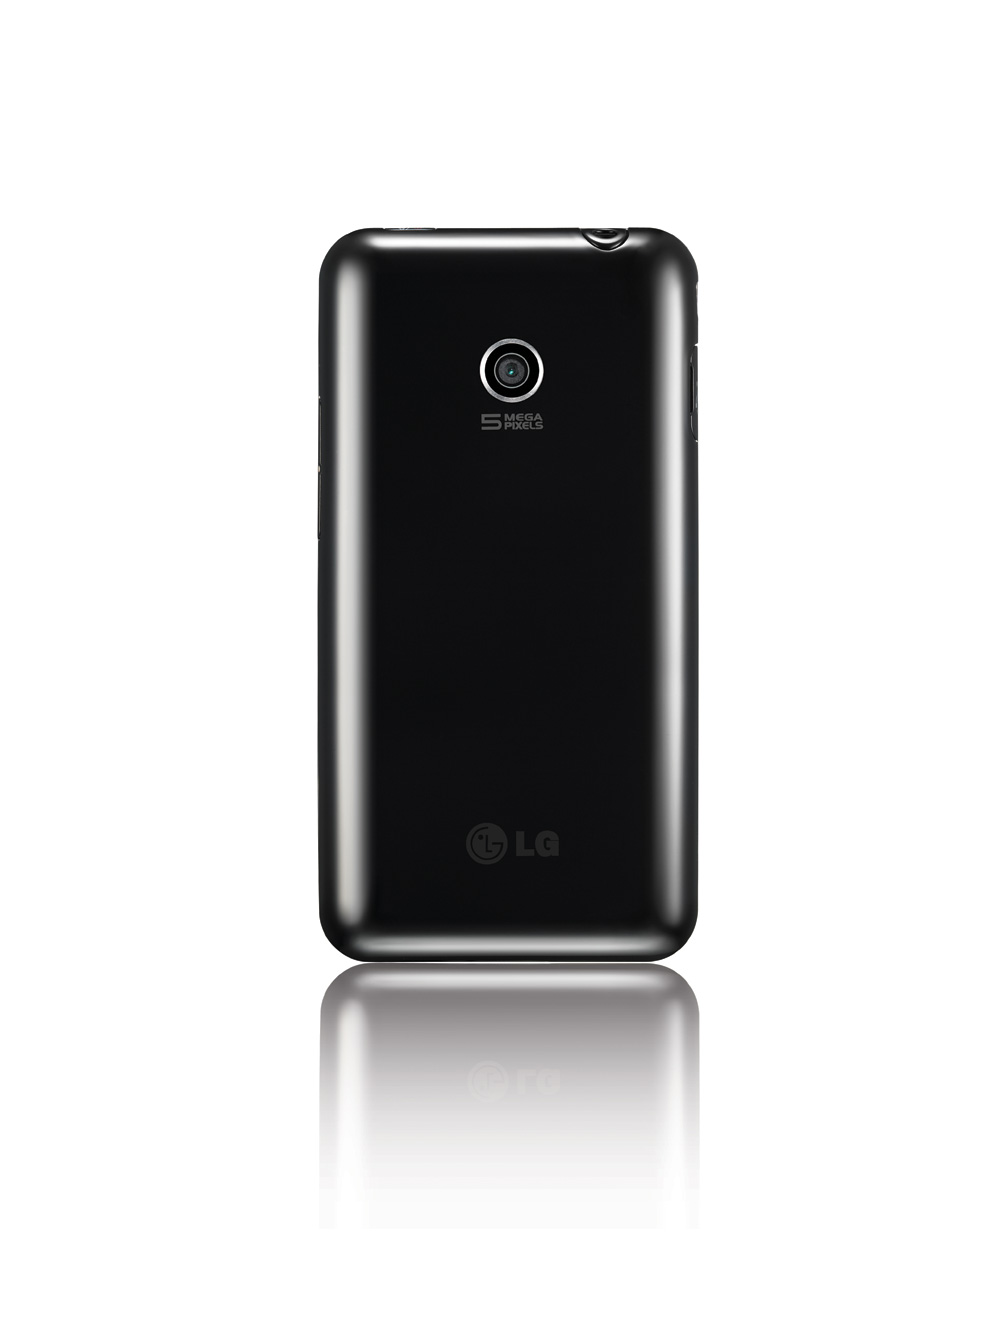 Rear view of the LG Optimus Chic's black variant